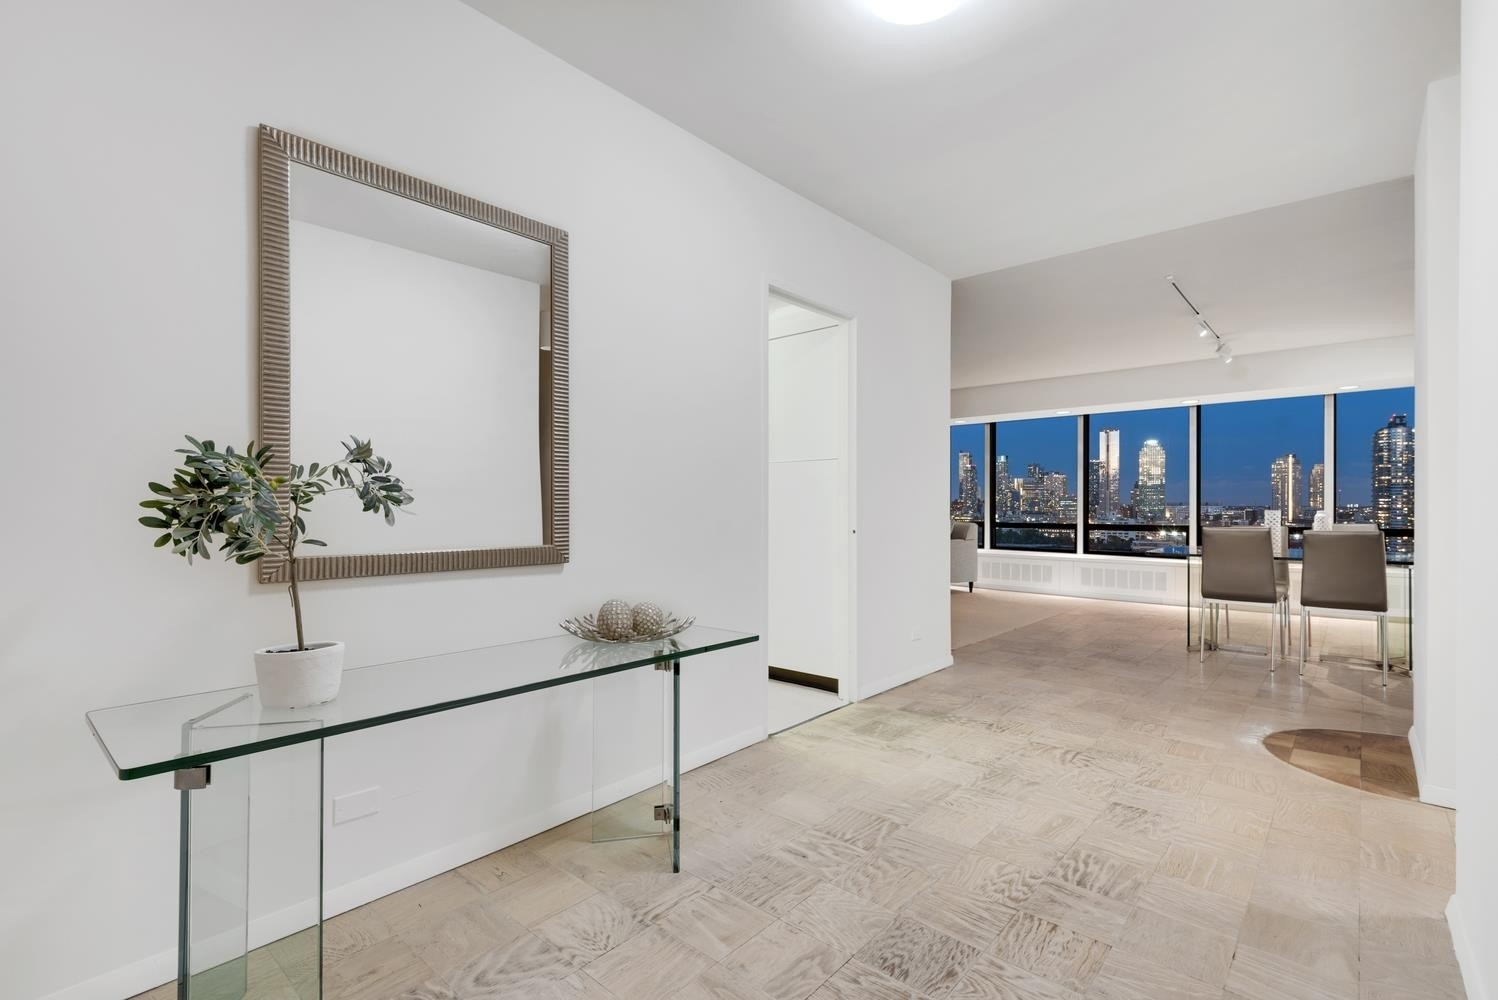 Co-op Properties for Sale at 870 United Nations Plaza, 14E Beekman, New York, NY 10017